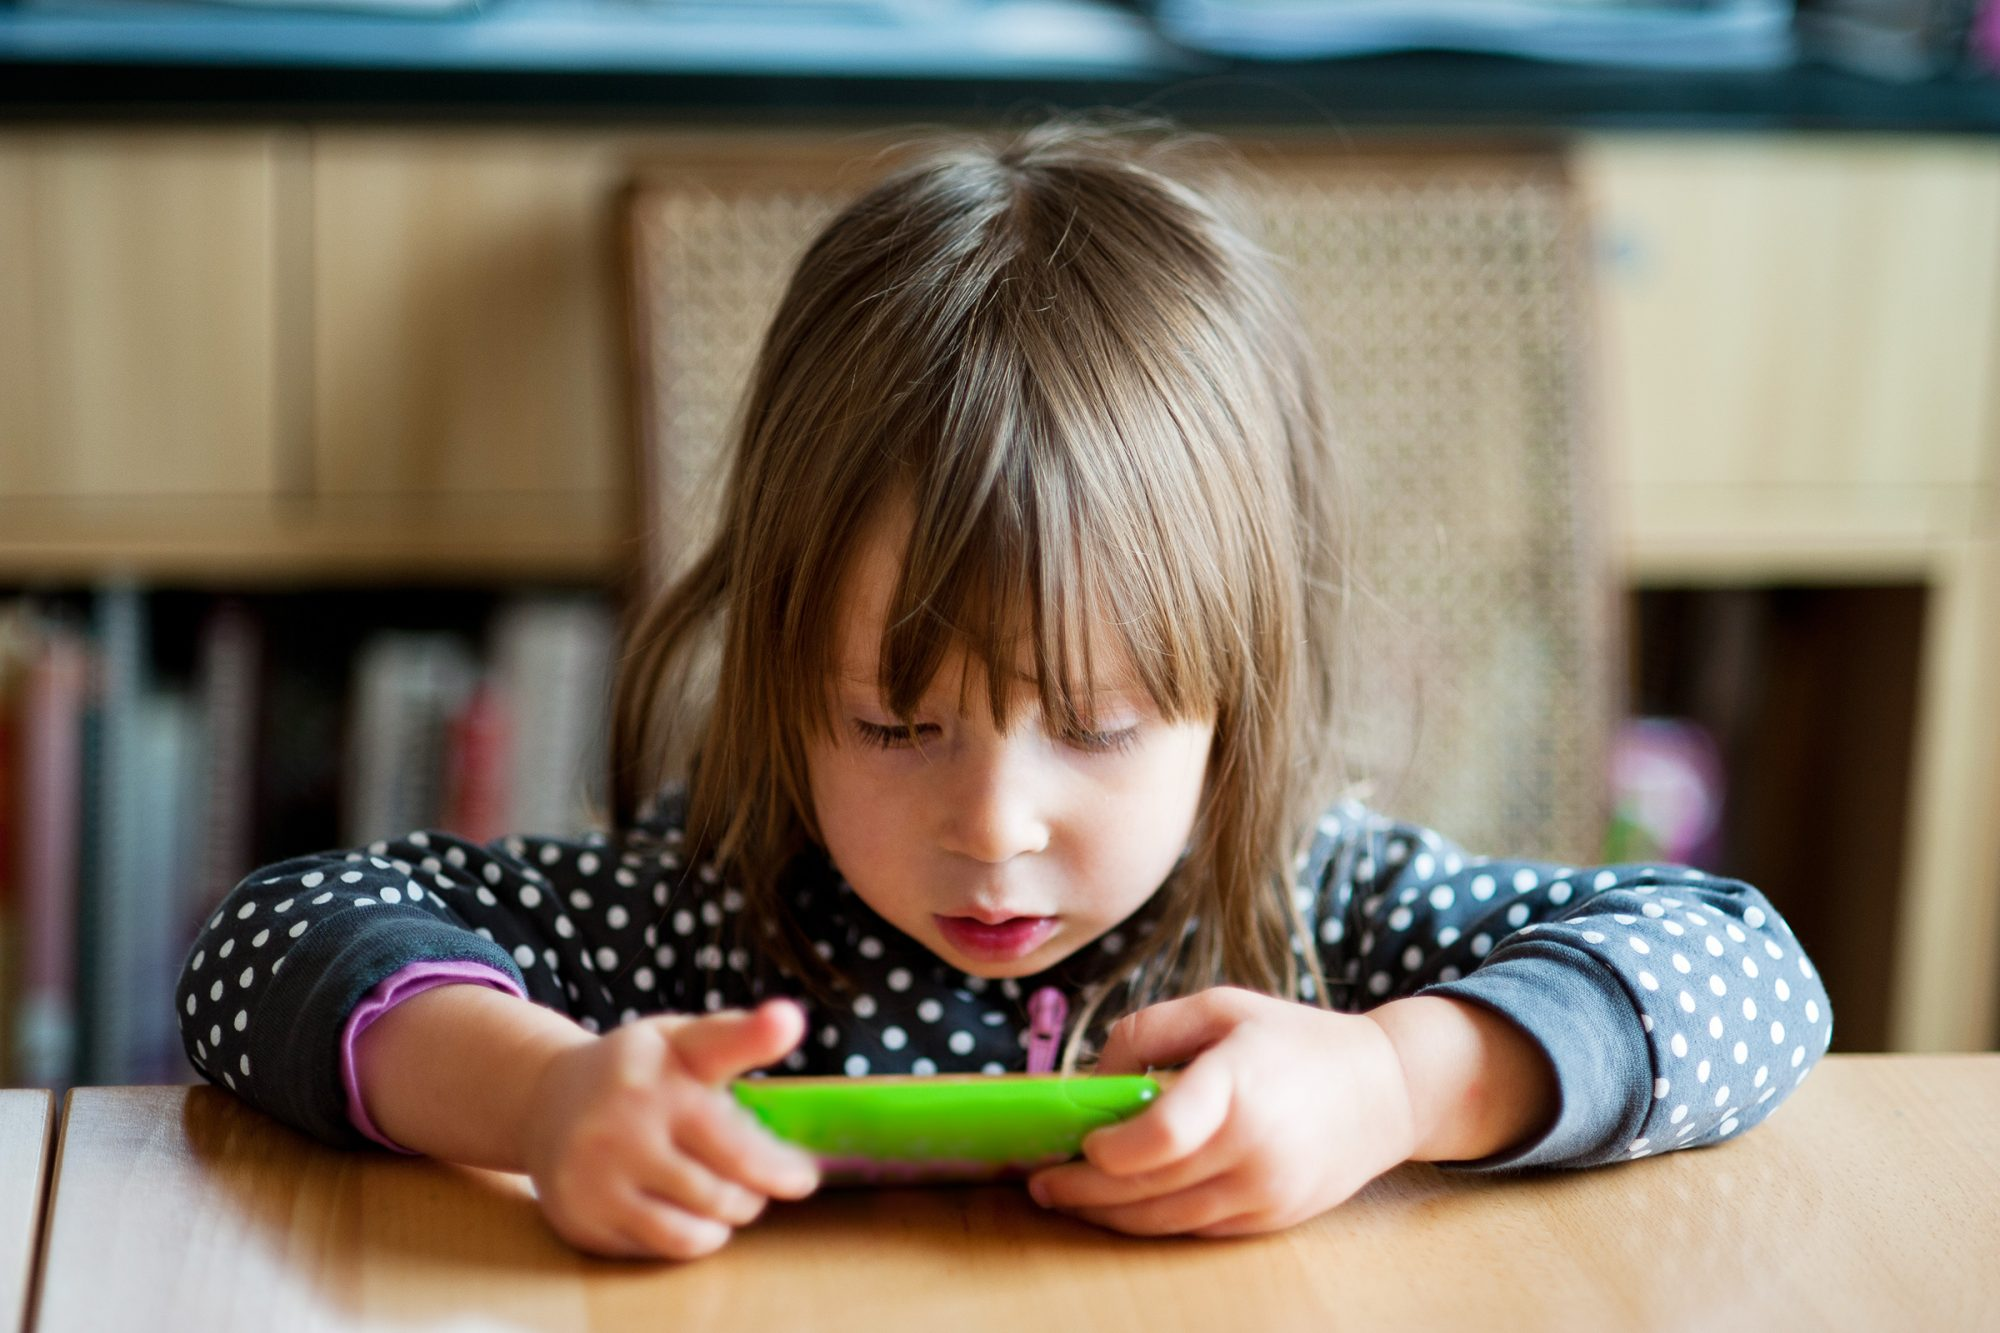 Toddler girl using smartphone at kitchen table at breakfast.